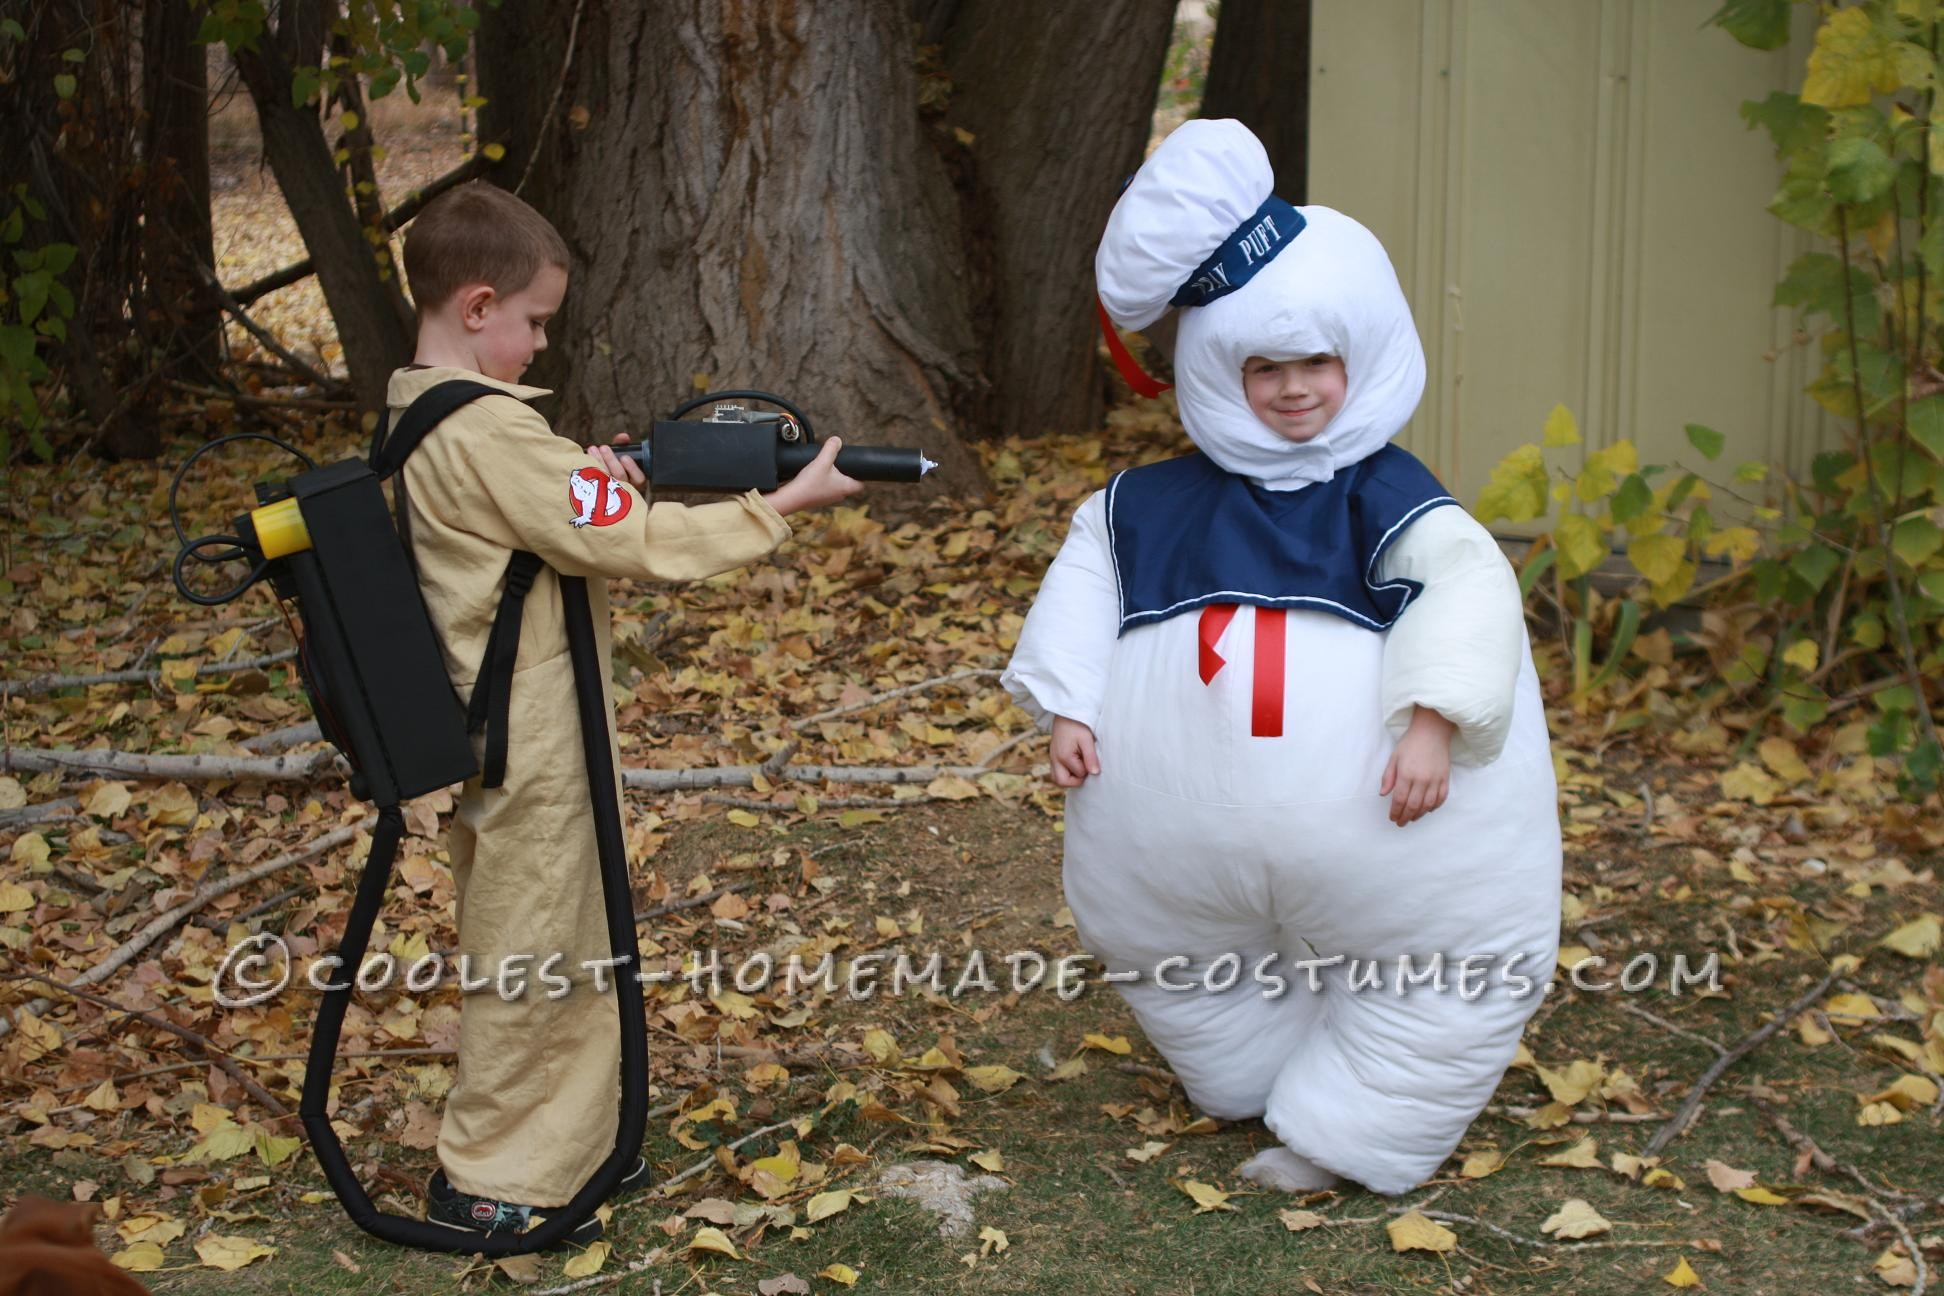 Both costumes are entirely handmade. Both costumes are made out of bed sheets and other miscellaneous fabric. Stay puft is basically two jumpsuits on